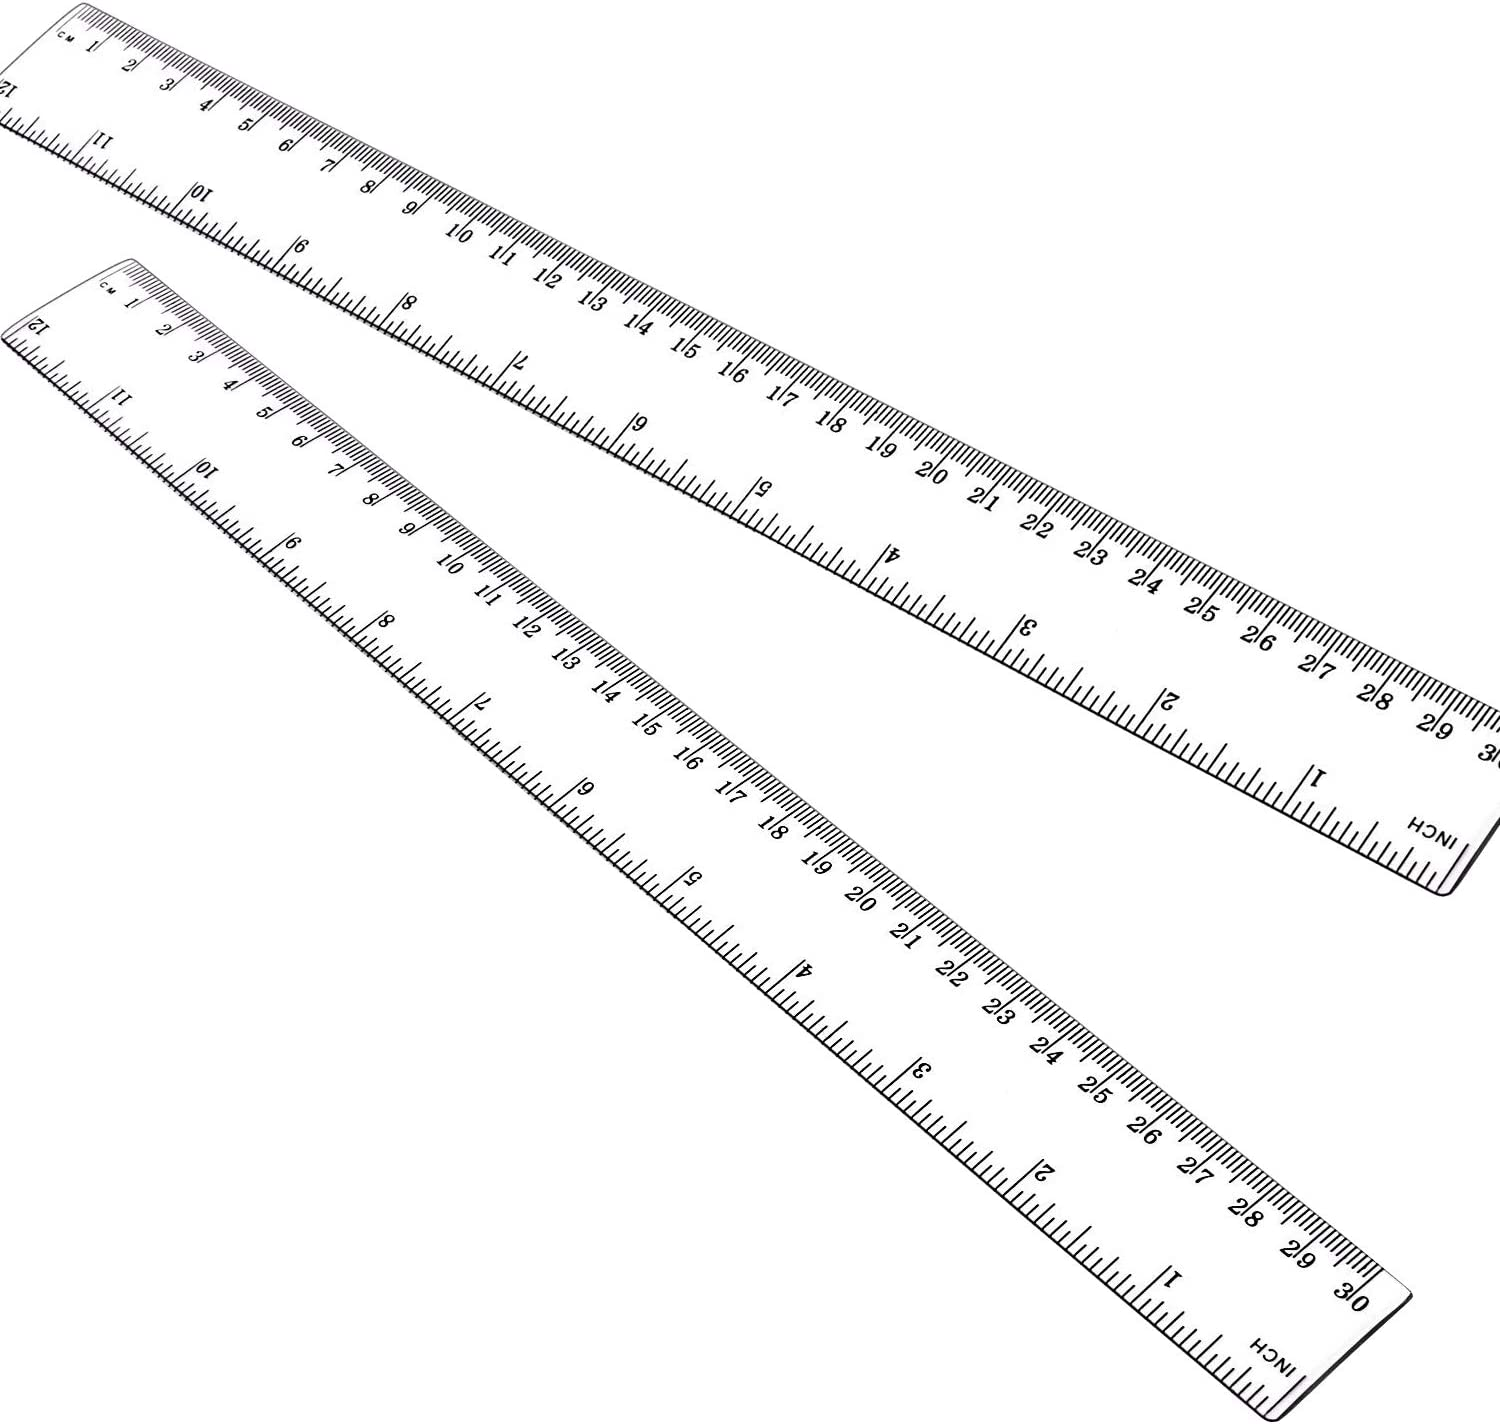 12 Inch Ruler, 2PCS Straight Ruler, 30CM Ruler with Centimeters and Inches, Plastic Measuring Tools, Clear